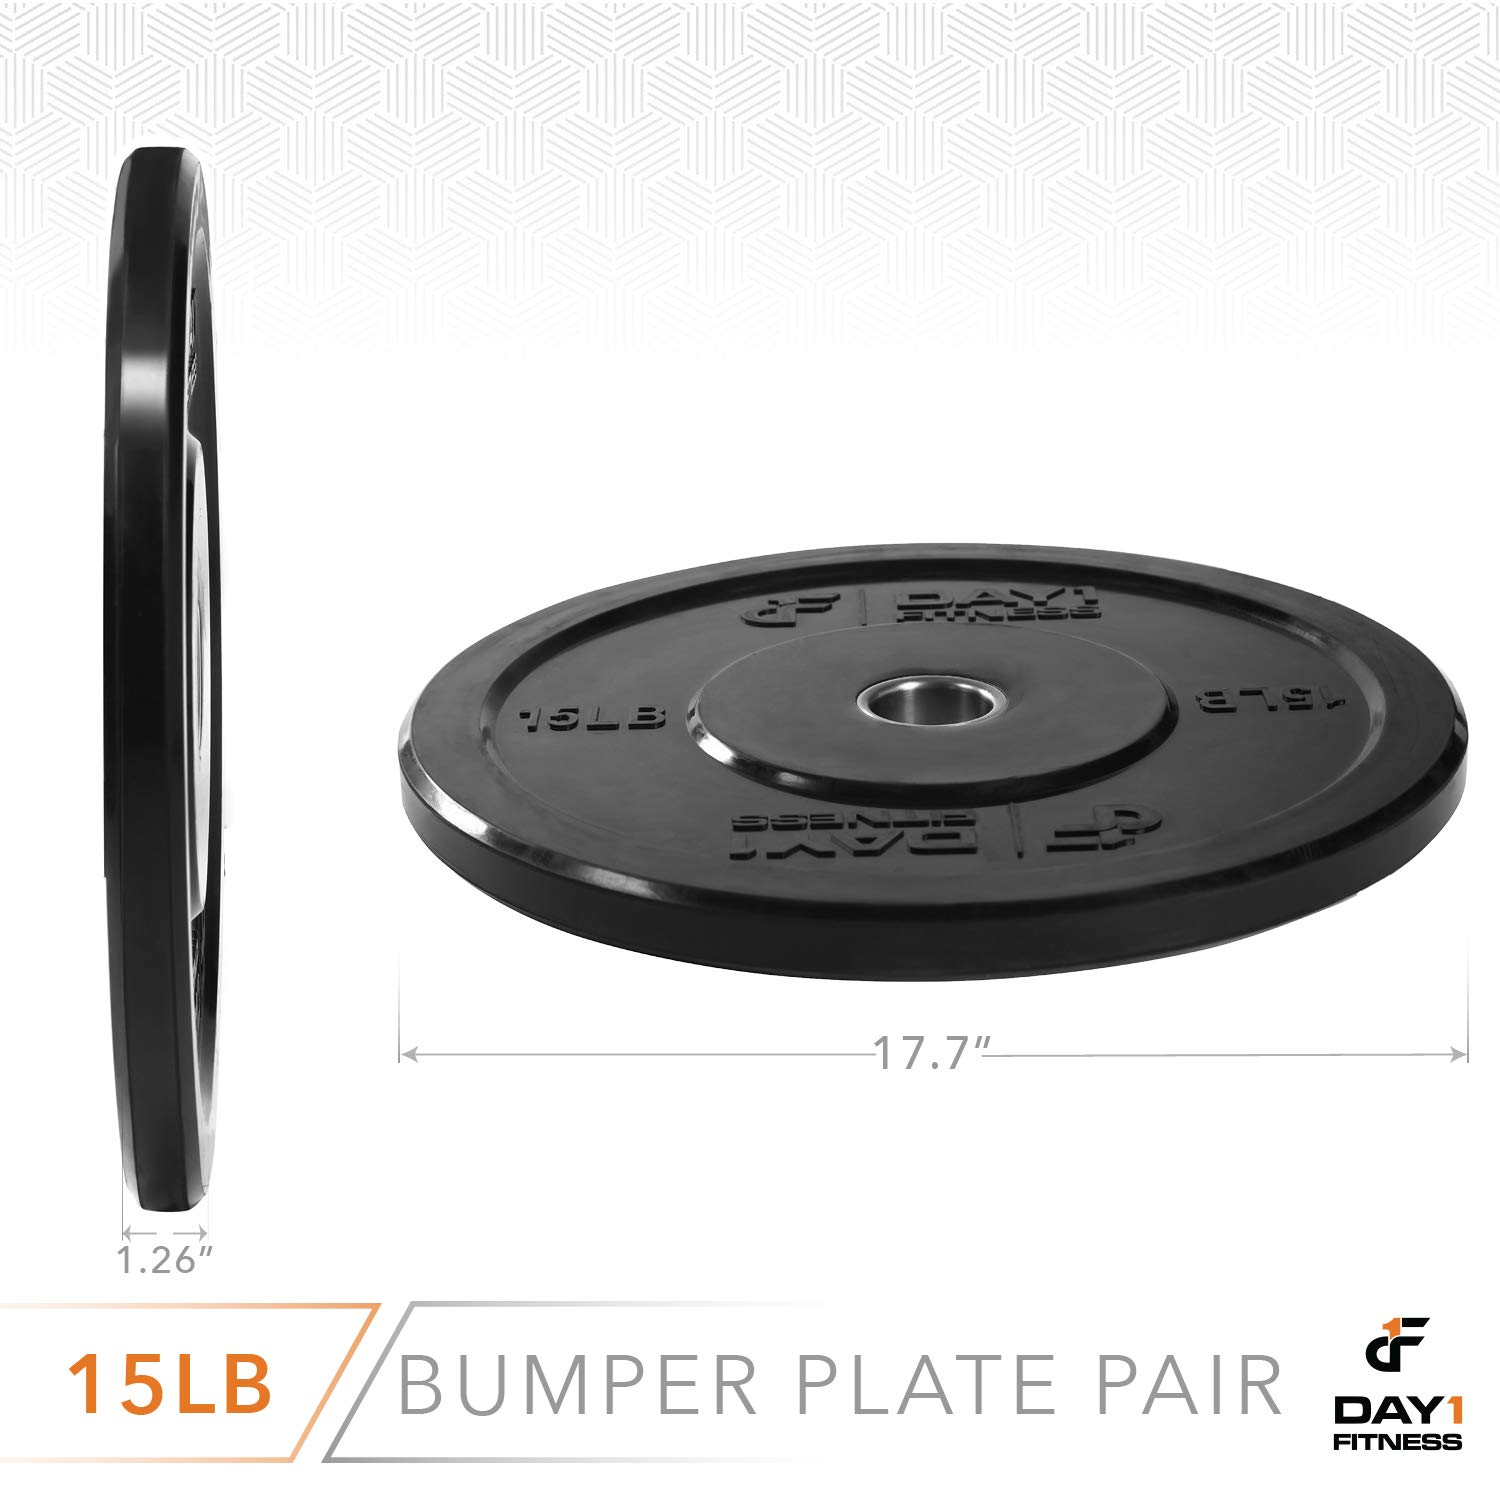 """Day 1 Fitness Olympic Bumper Weighted Plate 2"""" for Barbells, Bars – 15 lb Set of 2 Plates - Shock-Absorbing, Minimal Bounce Steel Weights with Bumpers for Lifting, Strength Training, and Working Out by Day 1 Fitness (Image #4)"""